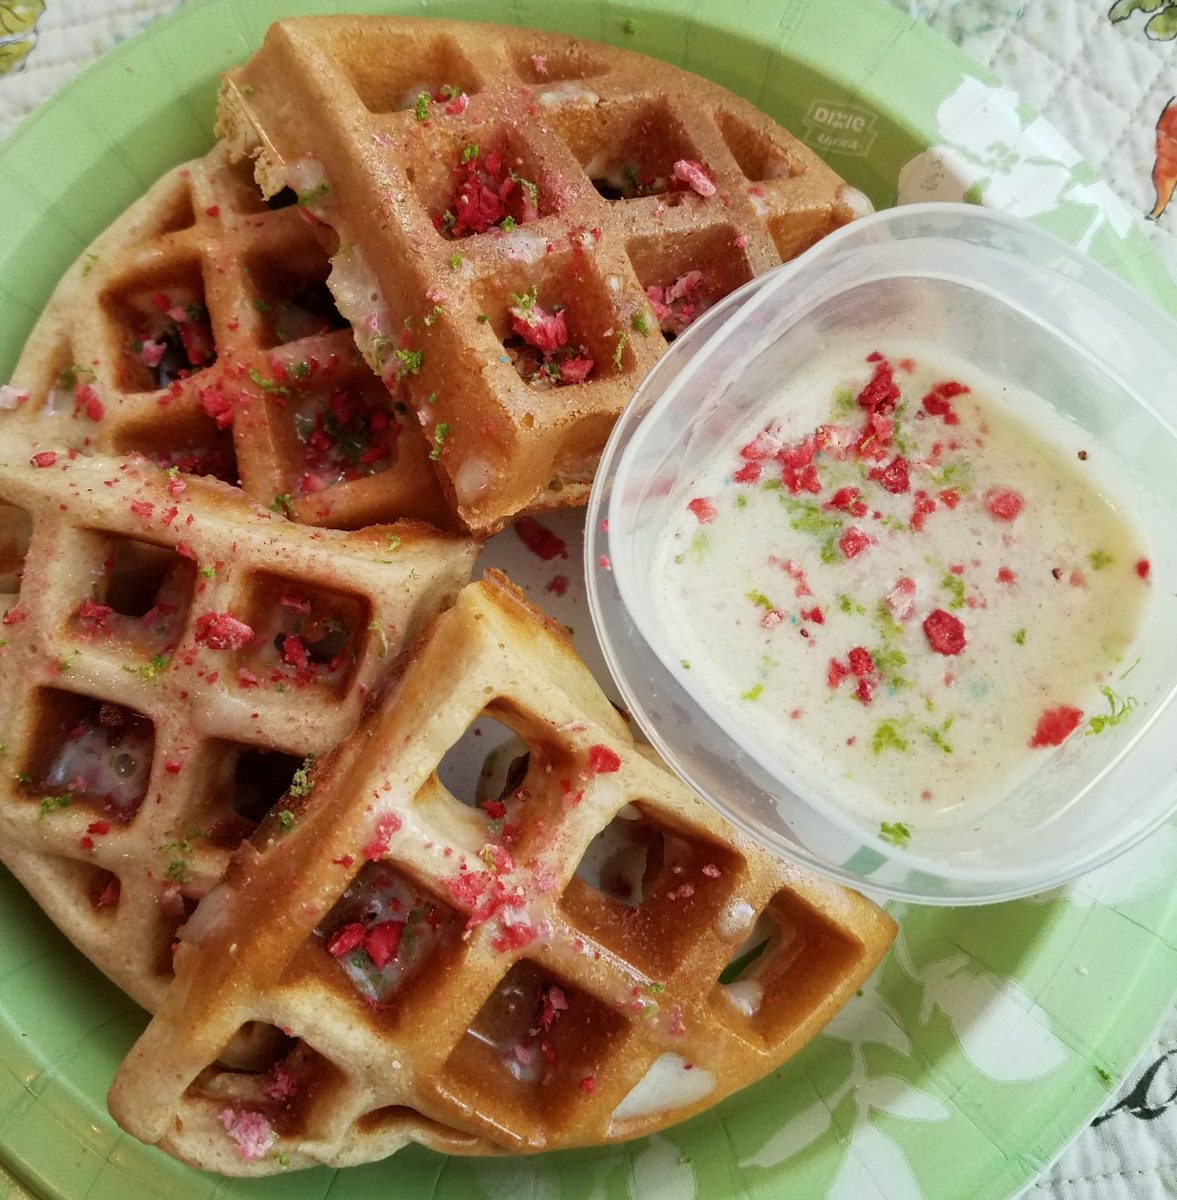 Key Lime Protein Waffle & Fruit Cereal Syrup